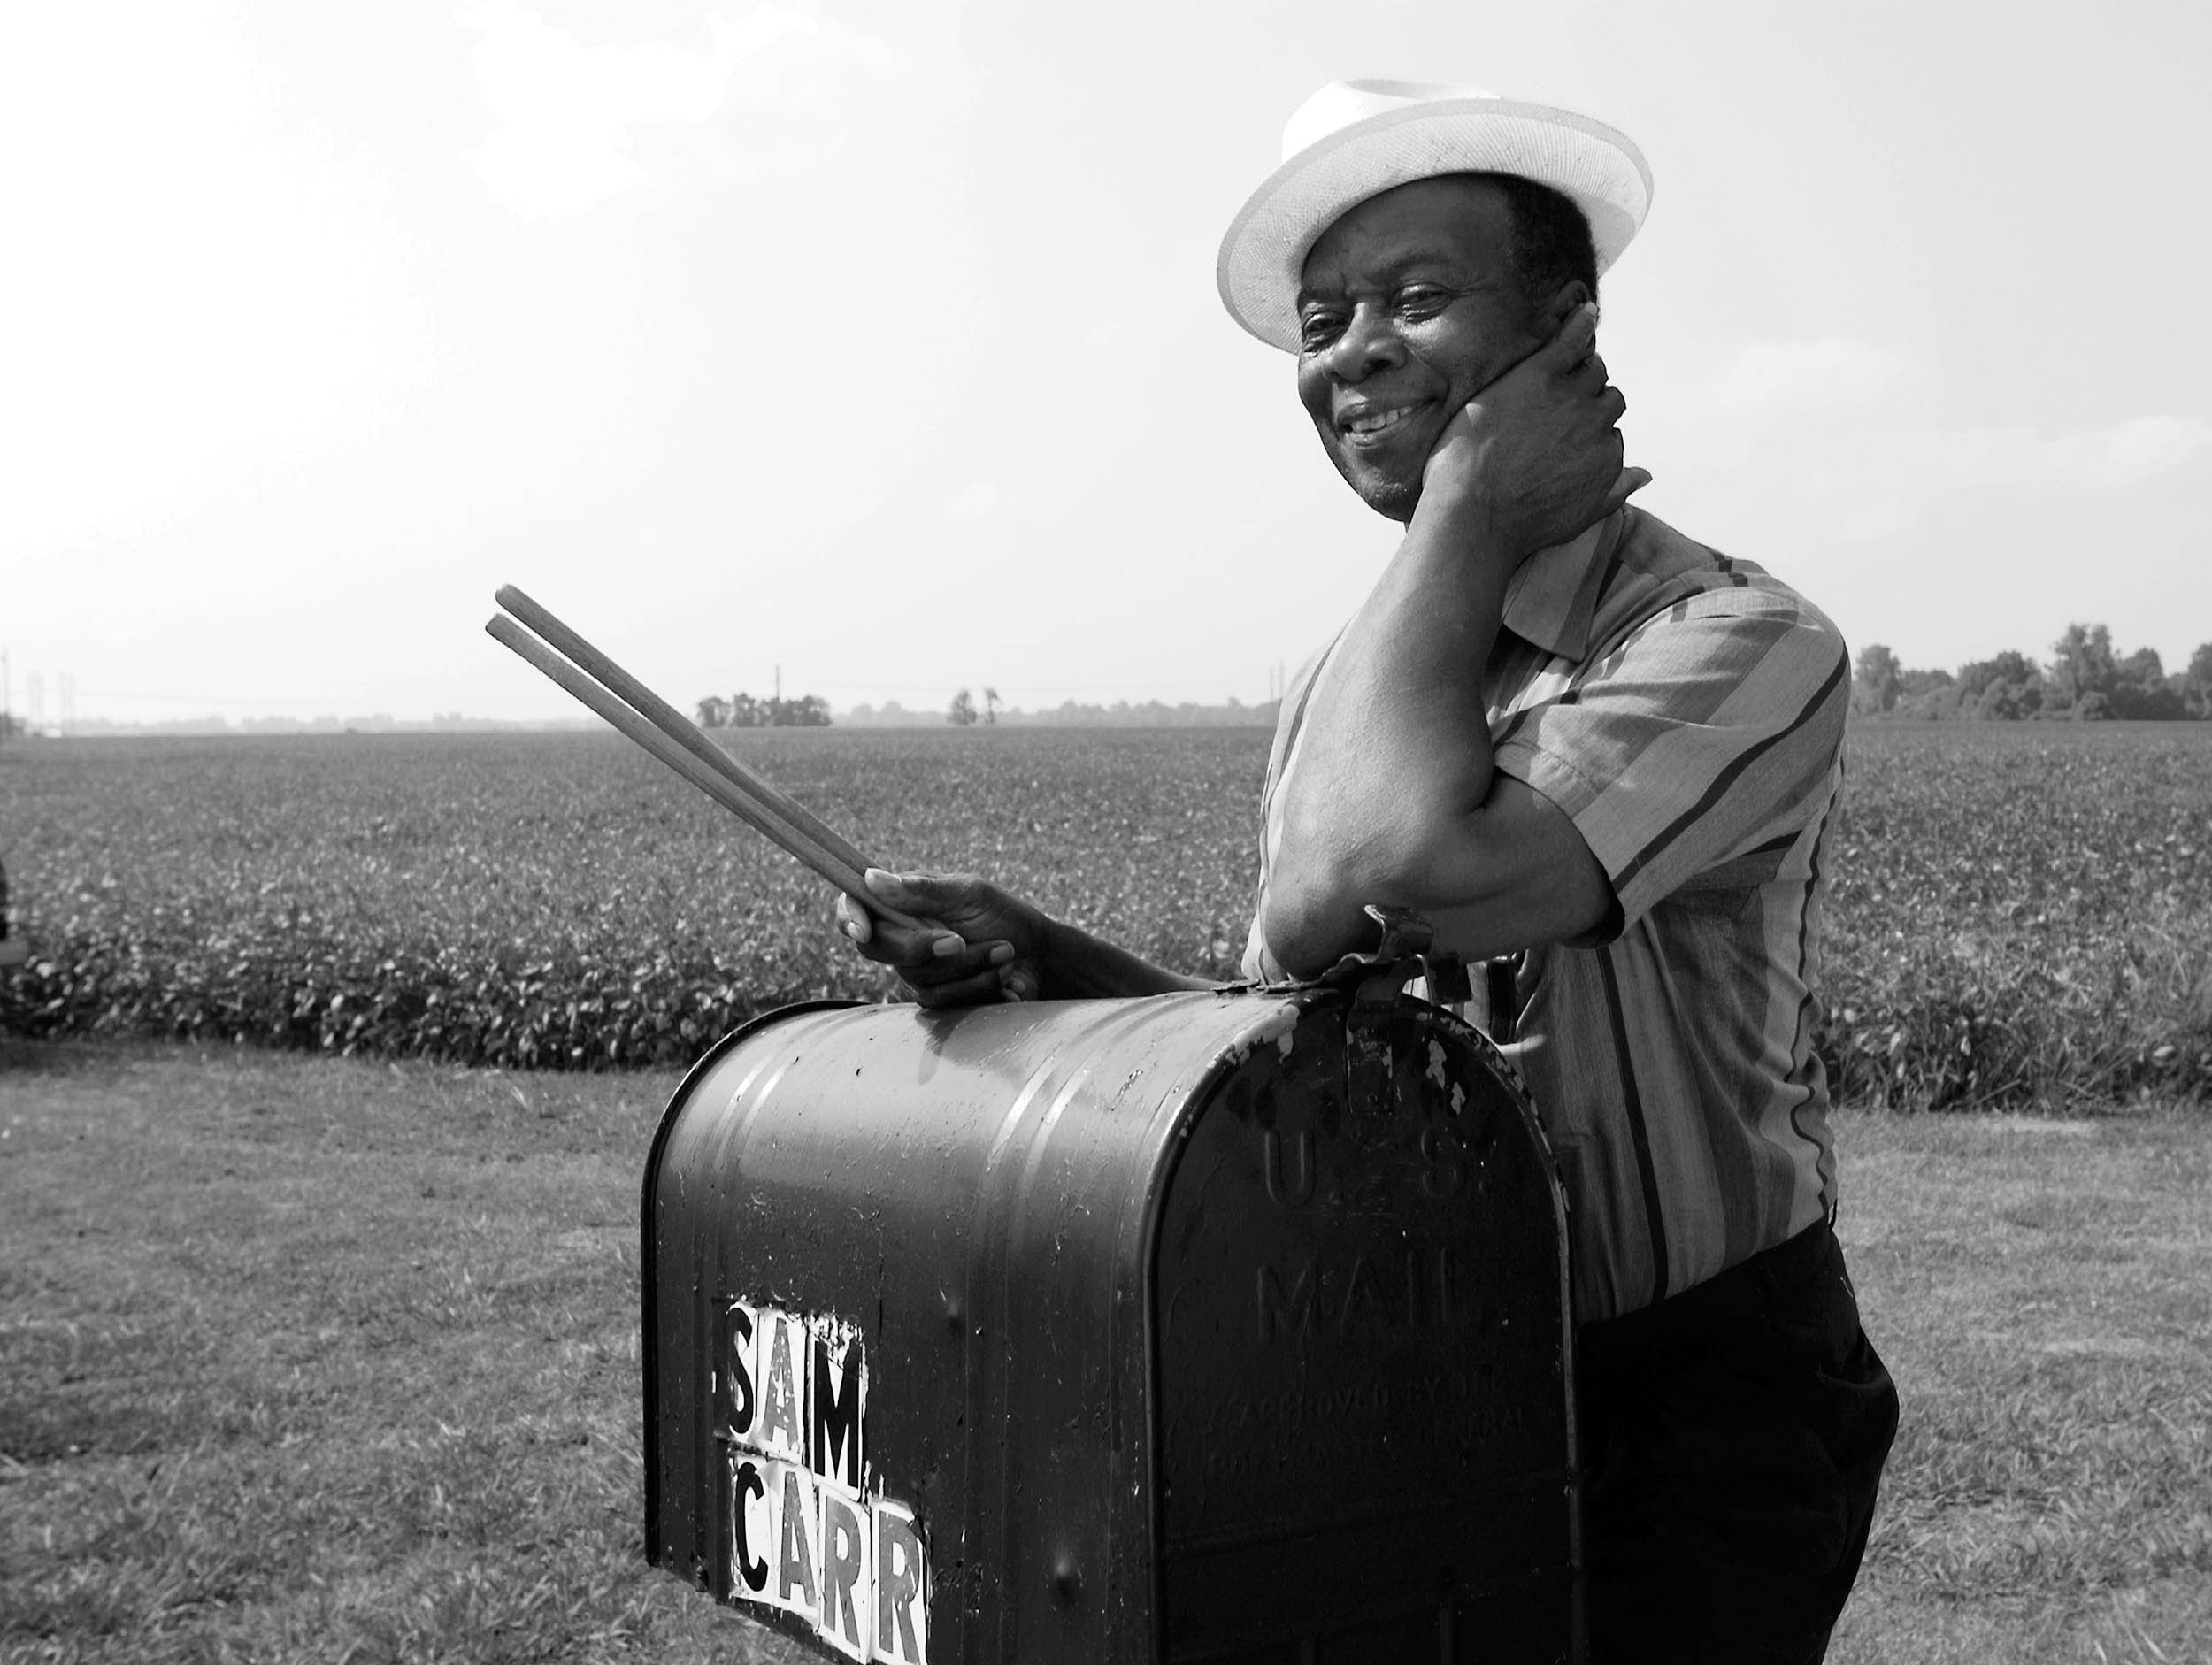 Sam Carr, blues drummer from Lula, Mississippi